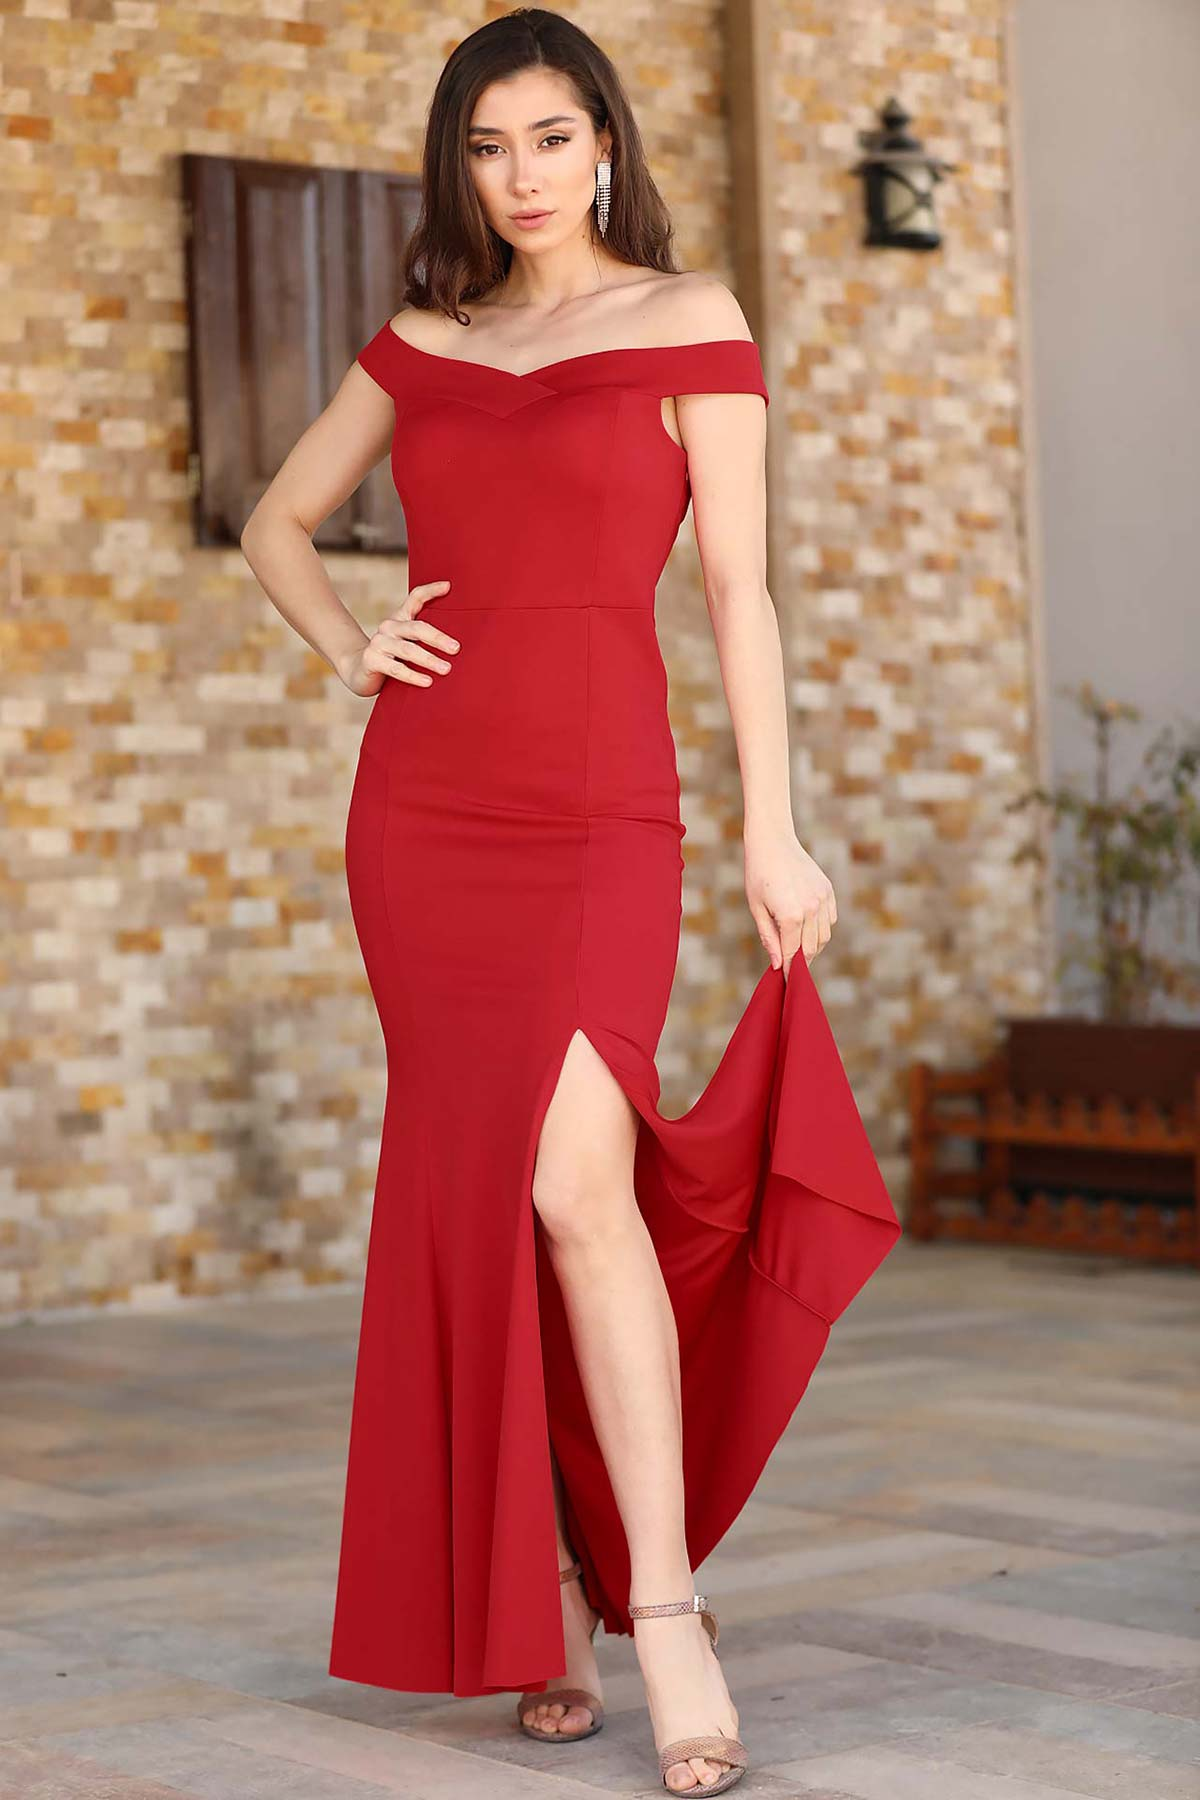 Slit Detail Red Evening Dress